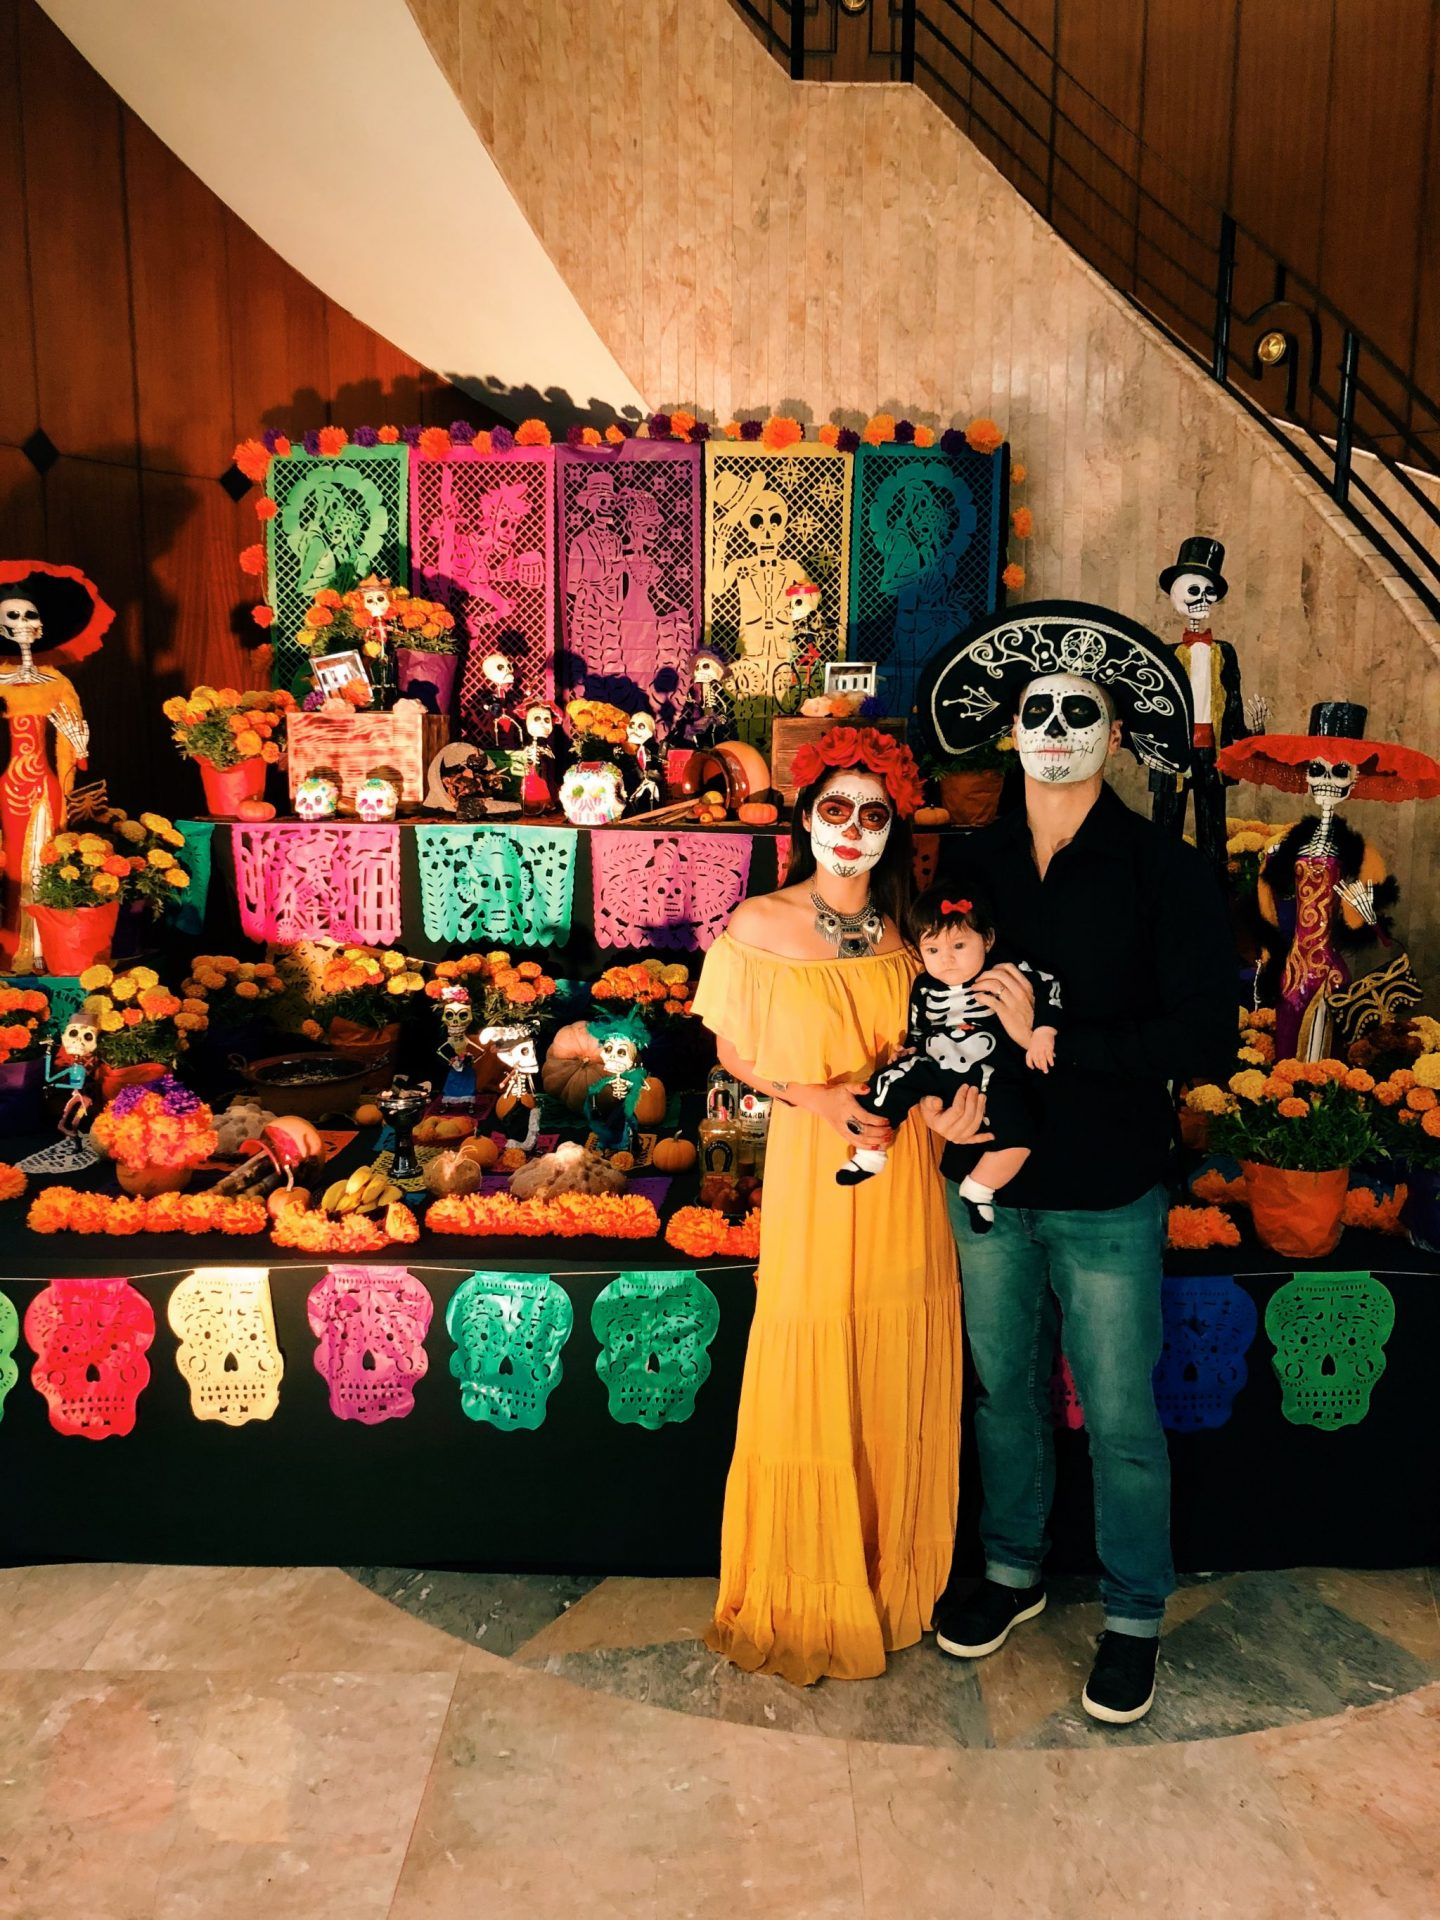 Planning a trip to in Mexico City for Dia de Los Muertos